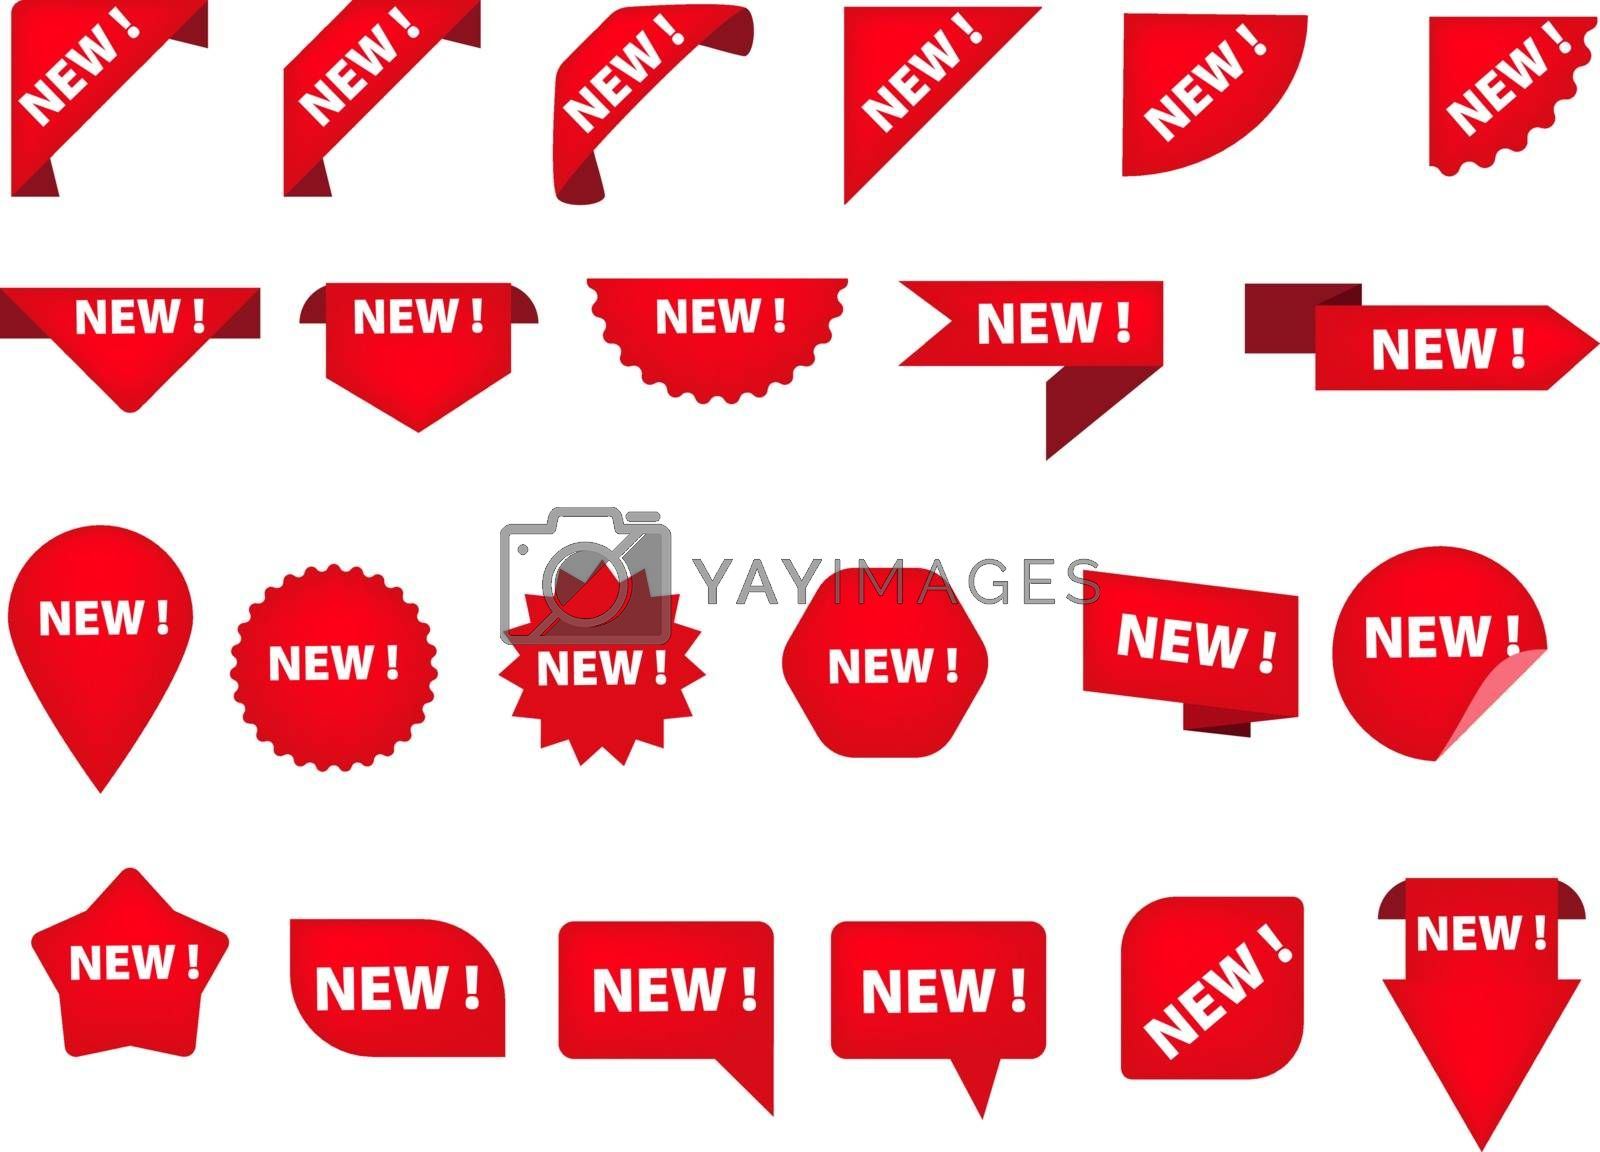 Set of various tags with New inscription. Product, label, information. Can be used for topics like background, collection, shopping